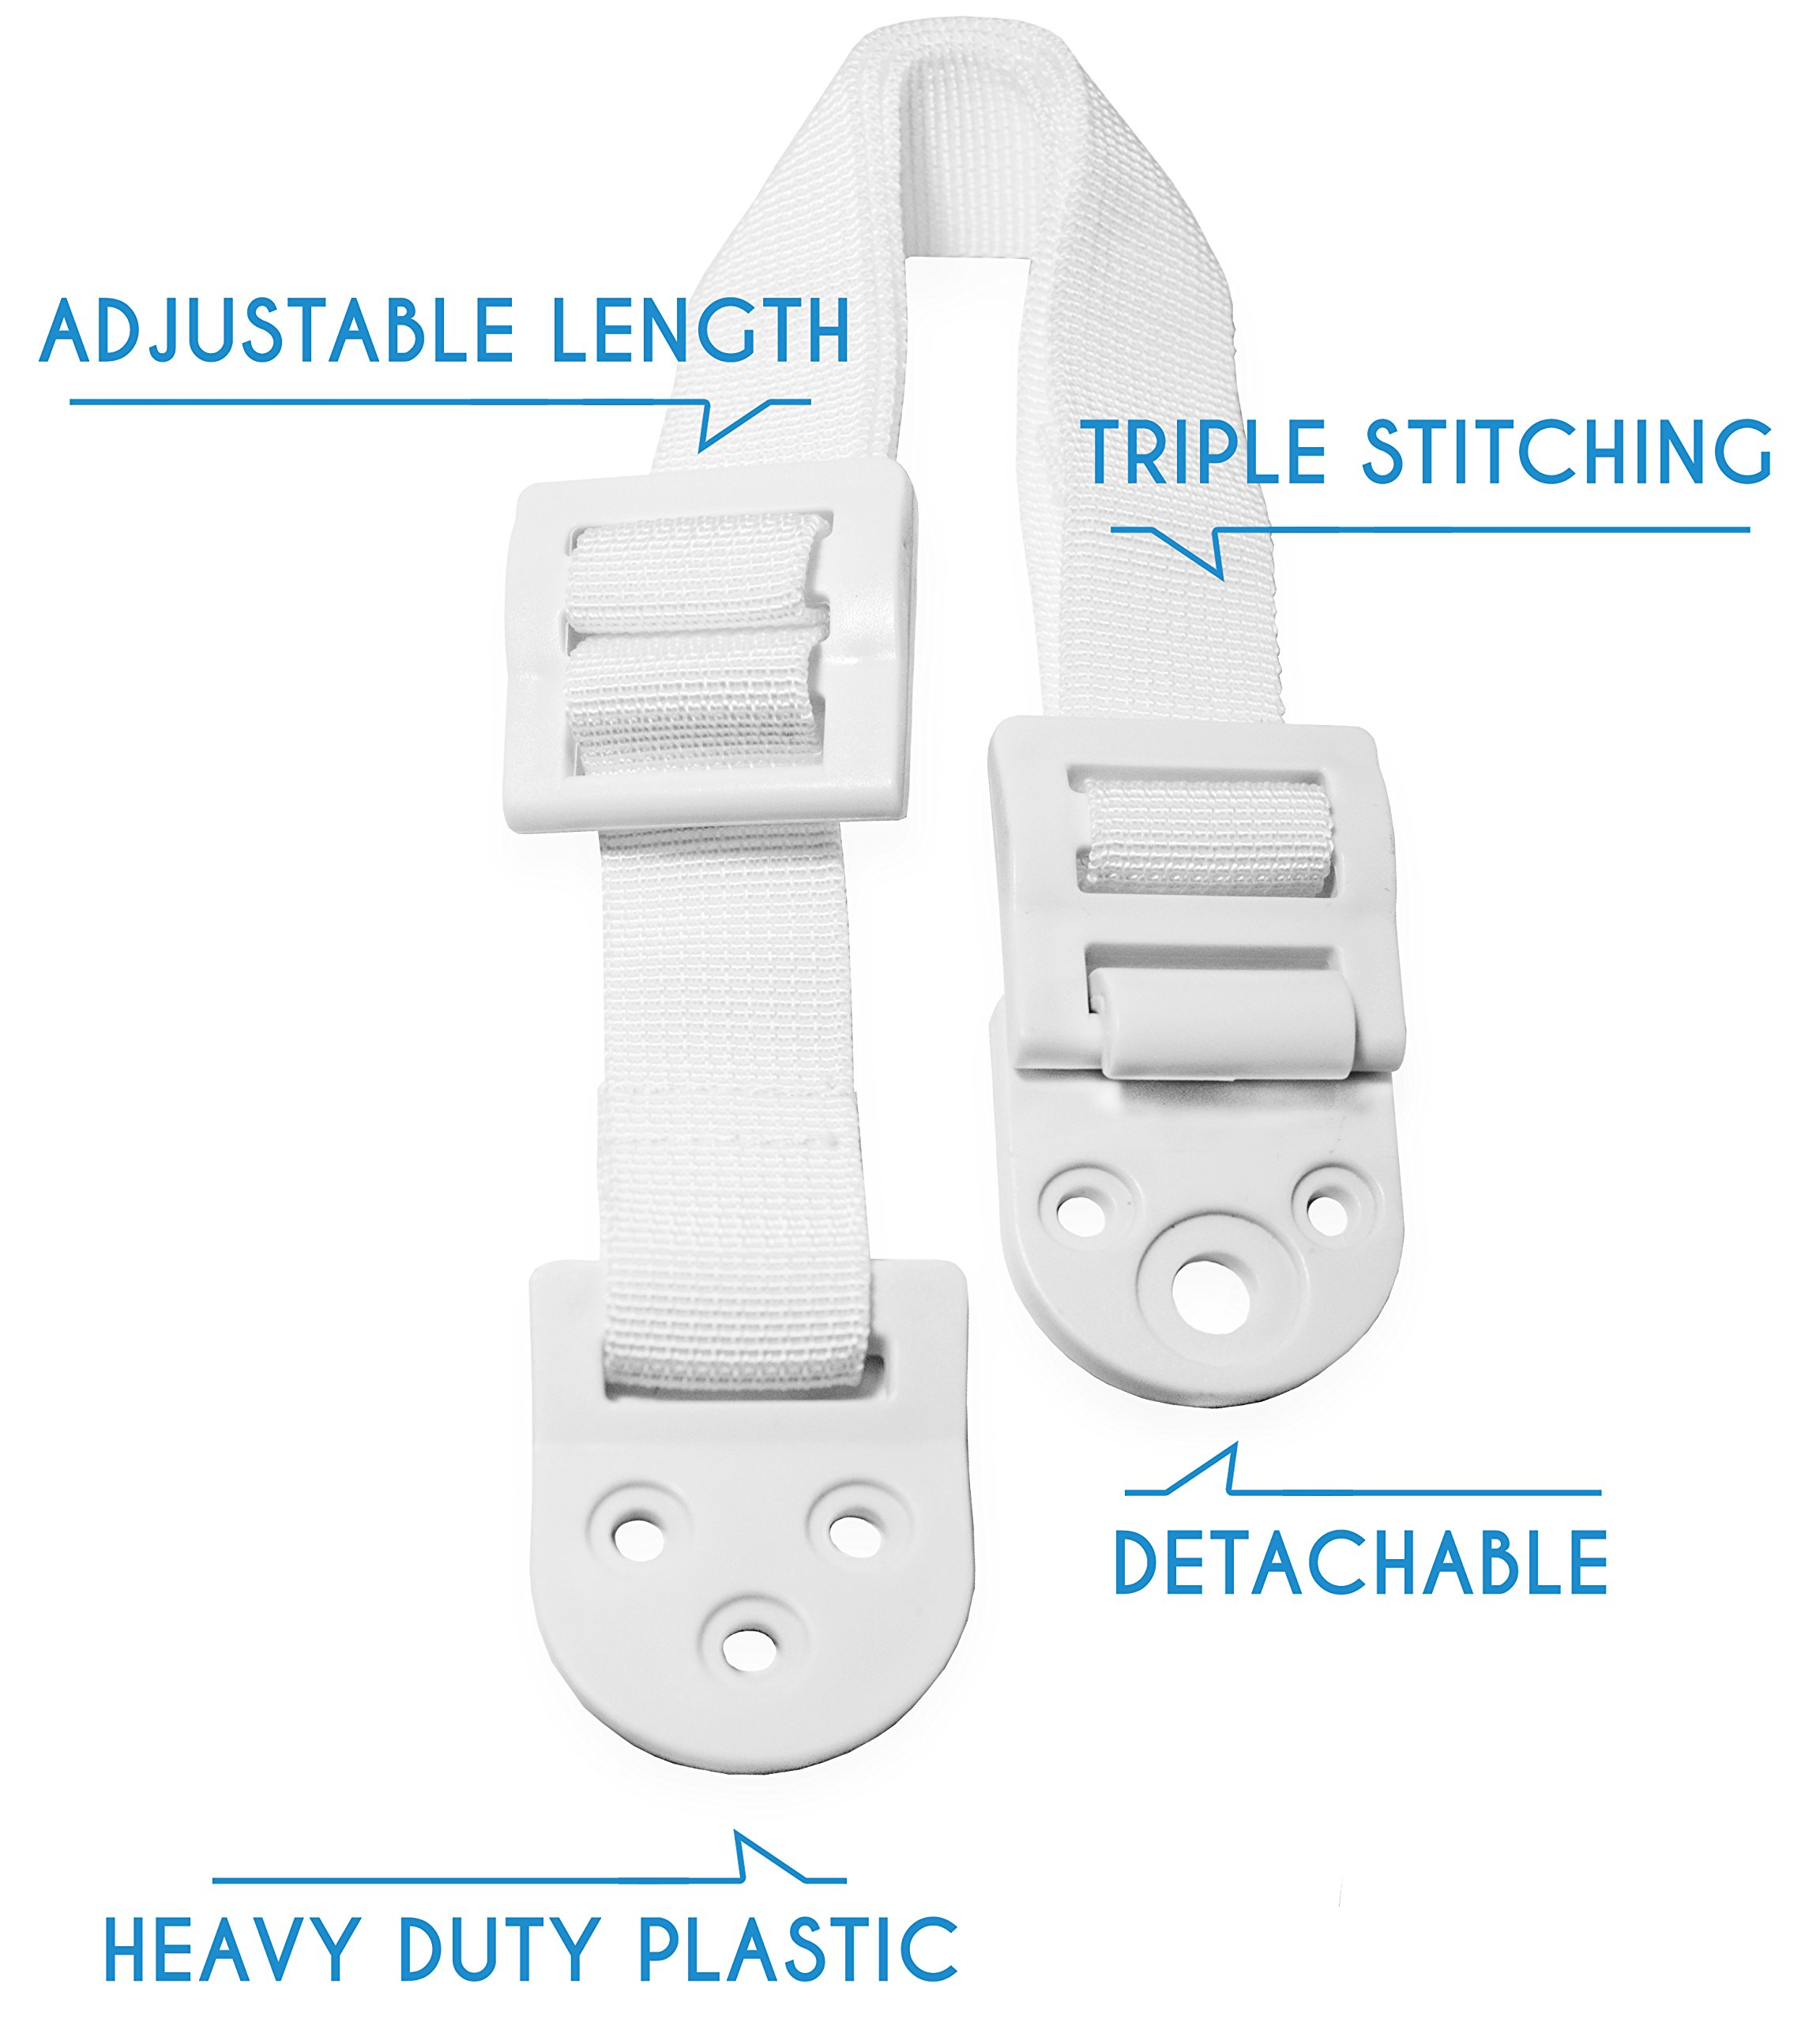 Boxiki Kids Adjustable Anti-Tip Furniture Anchors for Baby Proofing and Dresser Anchoring Kit. 8 PC Wall Anchors and Earthquake Straps. Baby Safety Kit and Home Safety Furniture Straps. (White) by Boxiki Kids (Image #3)